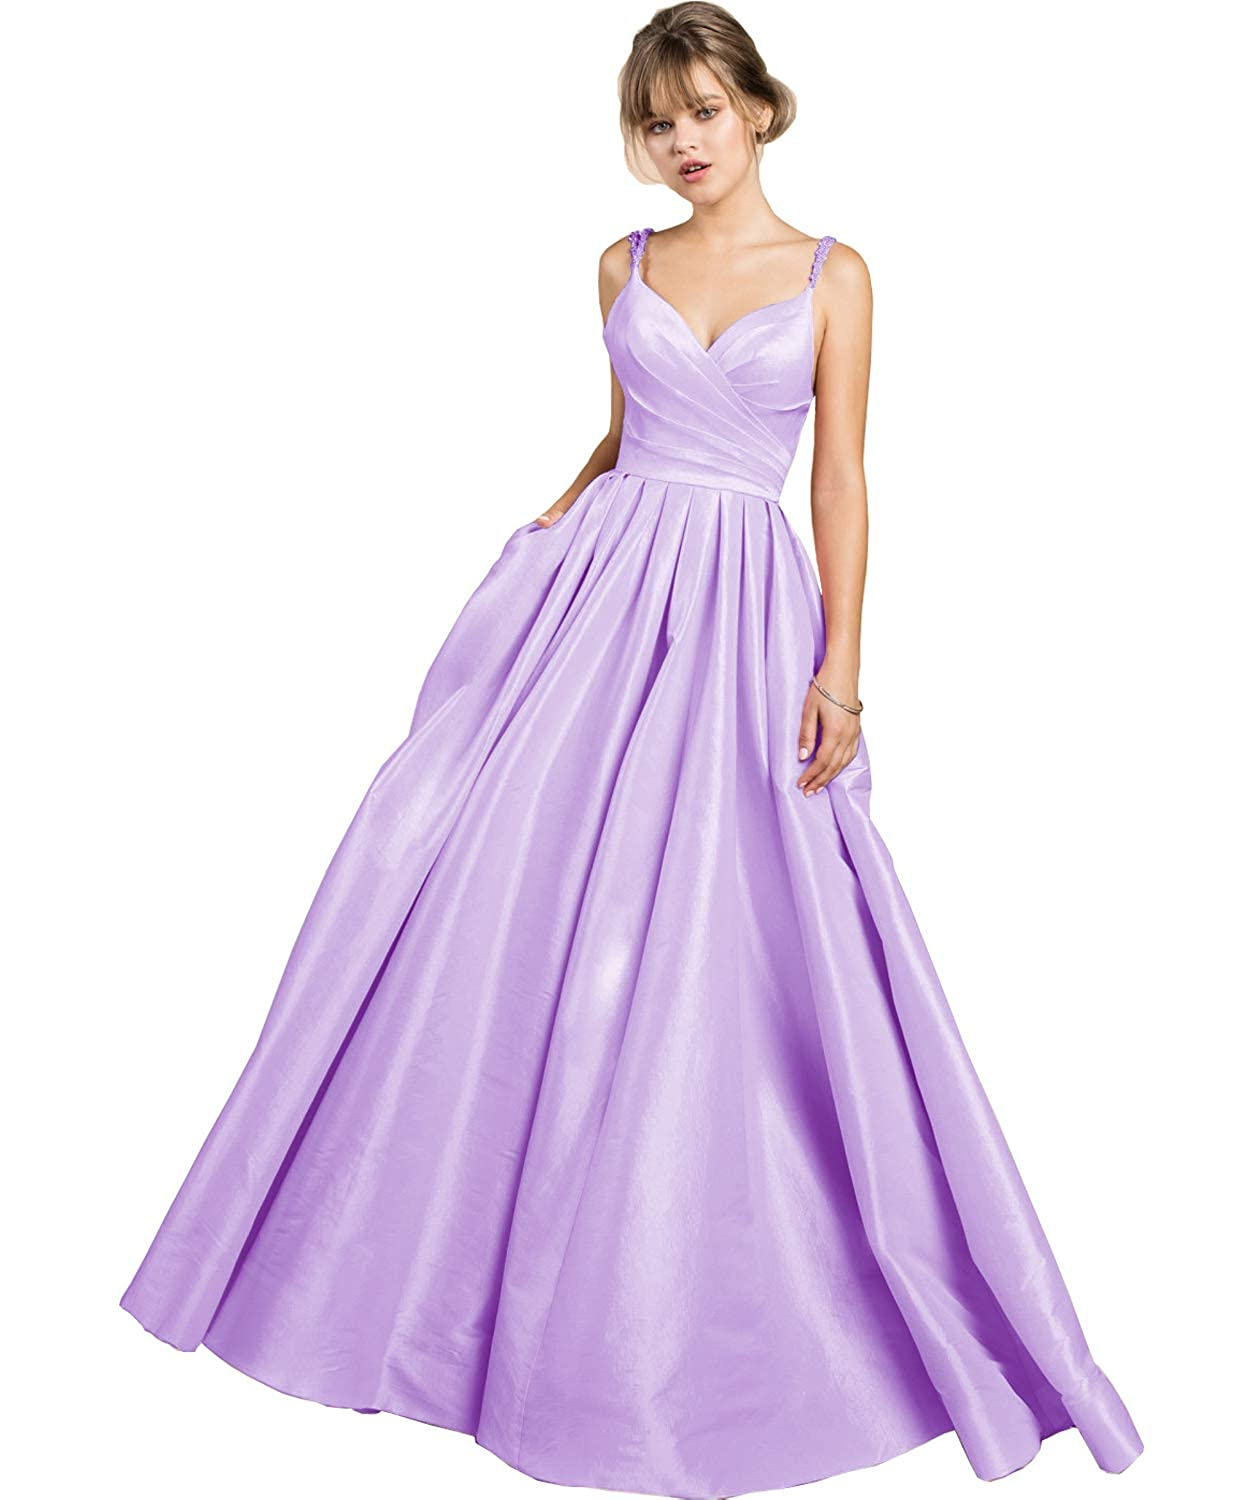 7a92ccbedb4d3 purplec Yilis Women's Beaded Spaghetti Straps V Neck Satin Aline Evening  Prom Dress Long Formal Gown